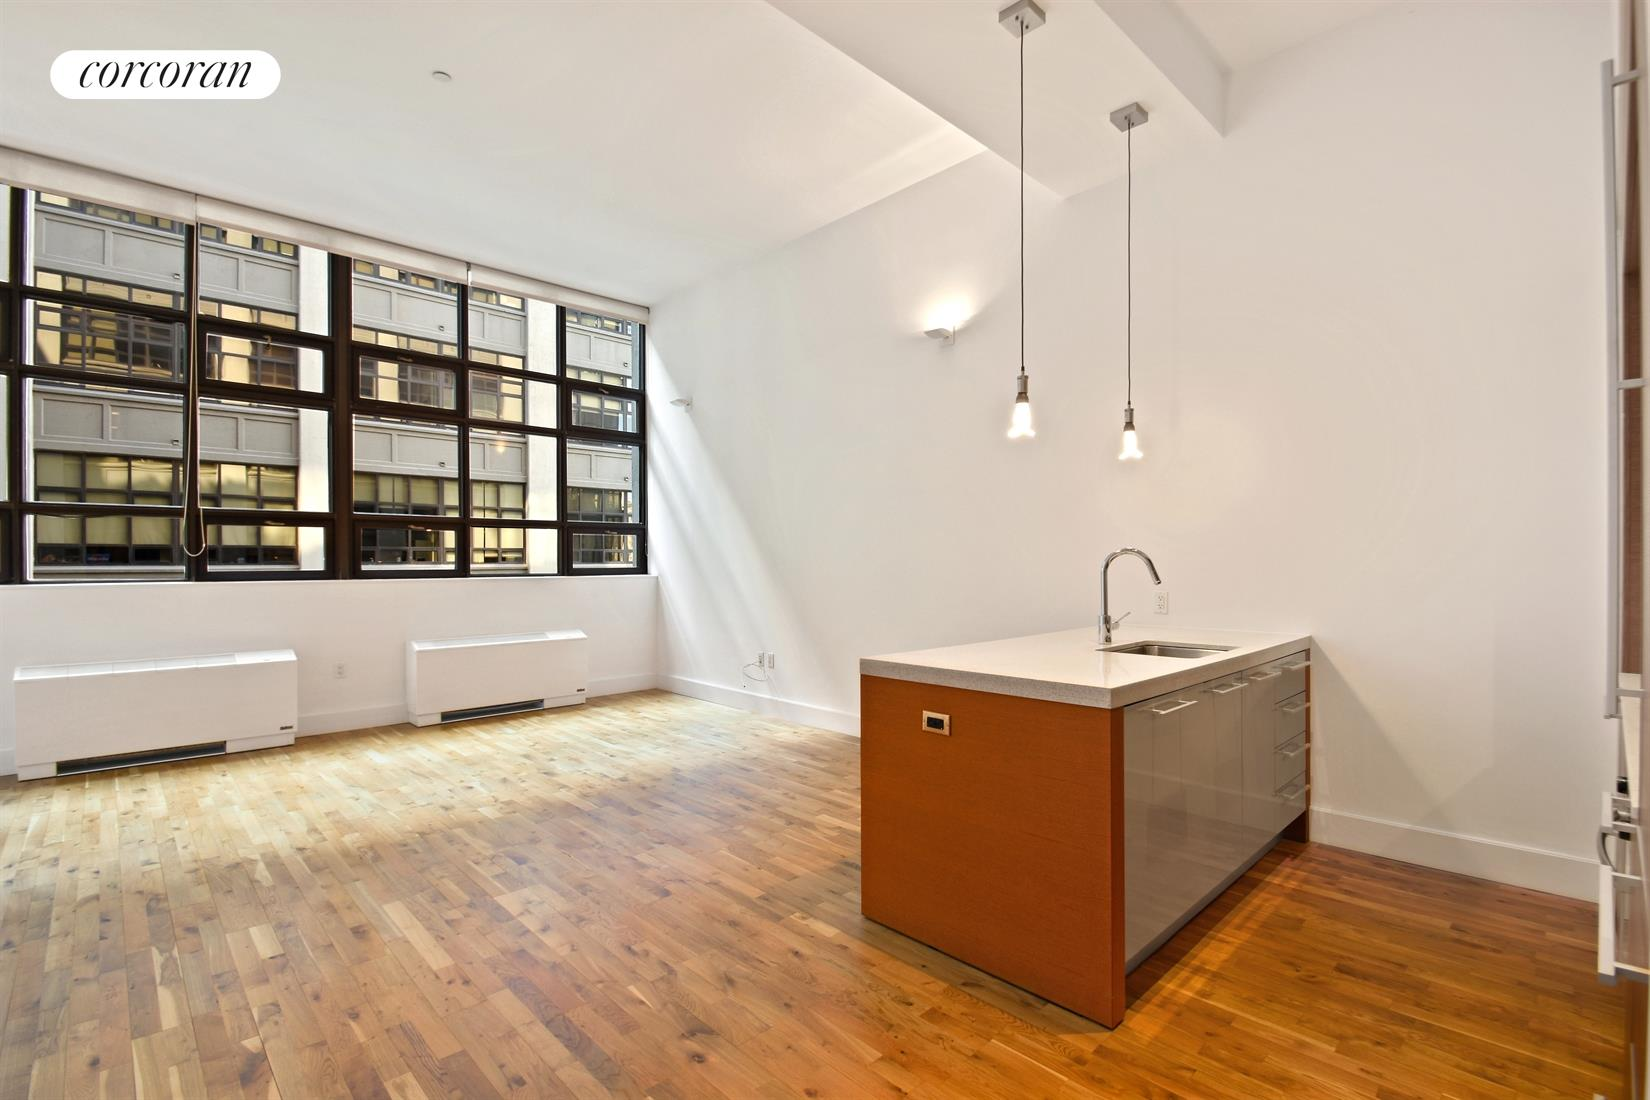 Corcoran, 360 Furman Street, Apt. 620, Brooklyn Heights Rentals ...